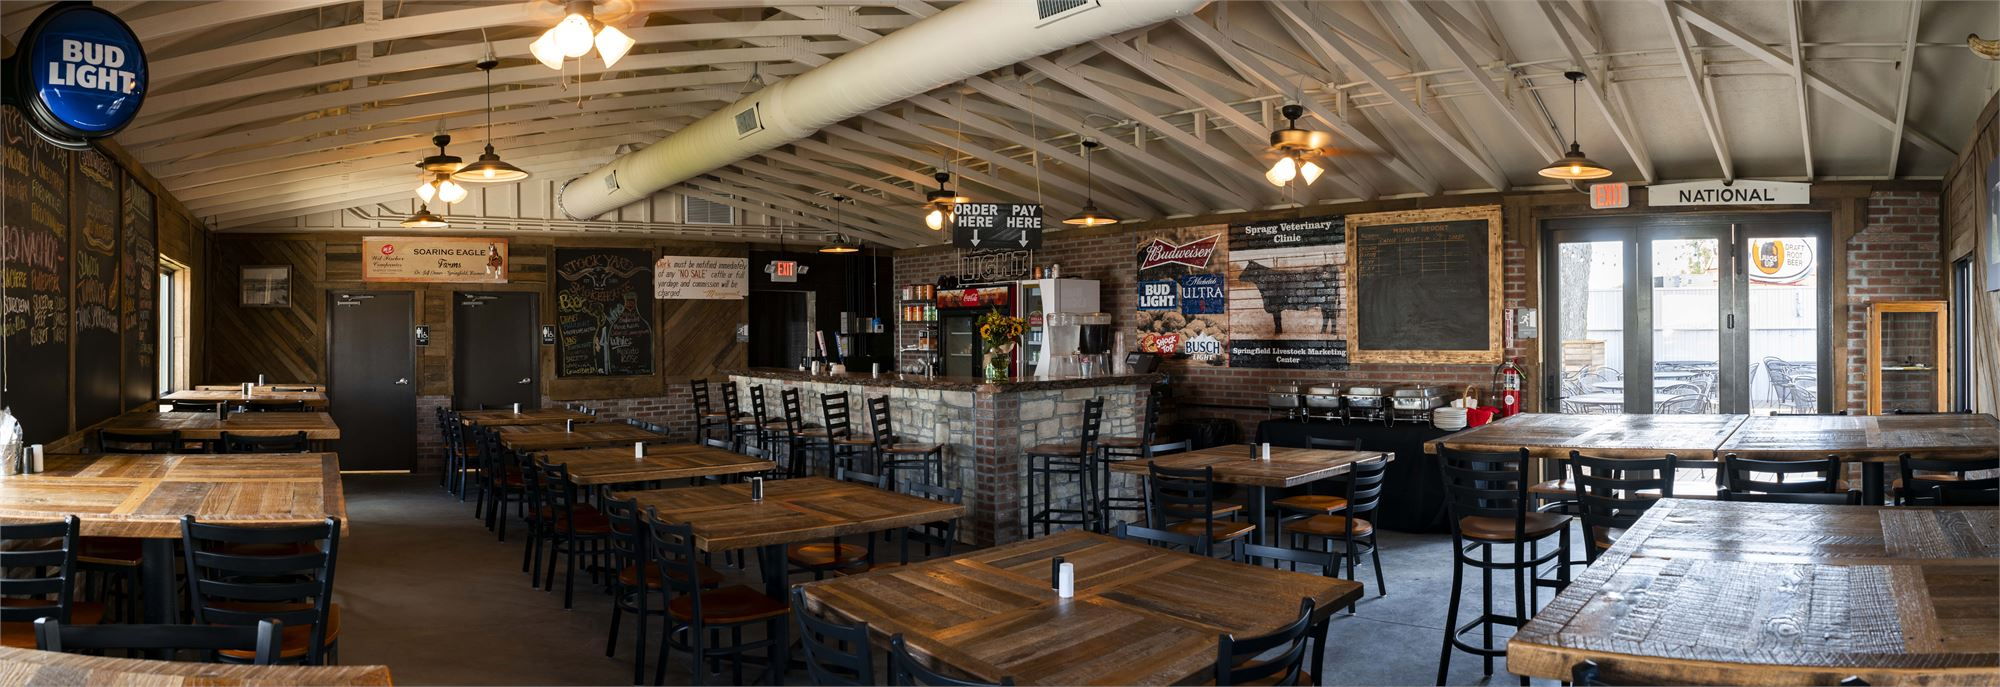 Inside of the Stockyard Smokehouse with handmade tables and a large wooden bar.